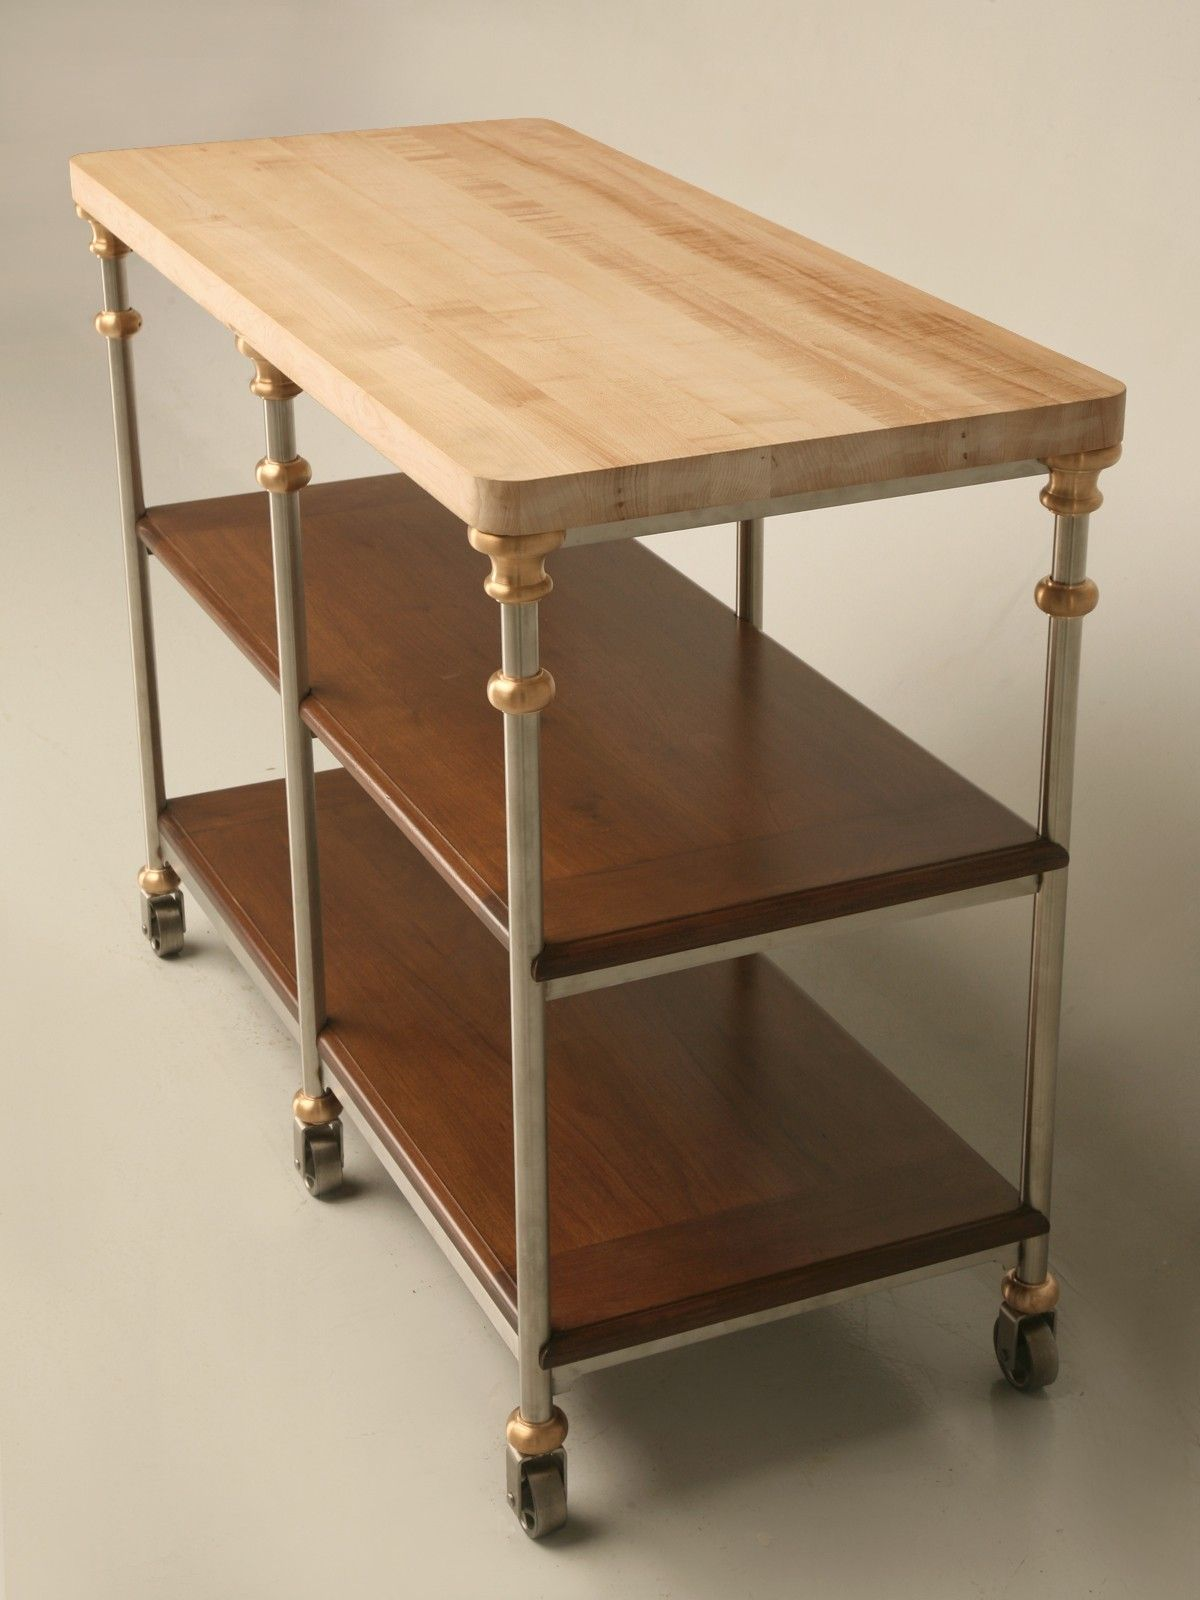 Shallow Stainless Steel Kitchen Island With Oak Shelves And Butcher Block Top Stainless Steel Kitchen Island Butcher Block Island Kitchen Oak Shelves